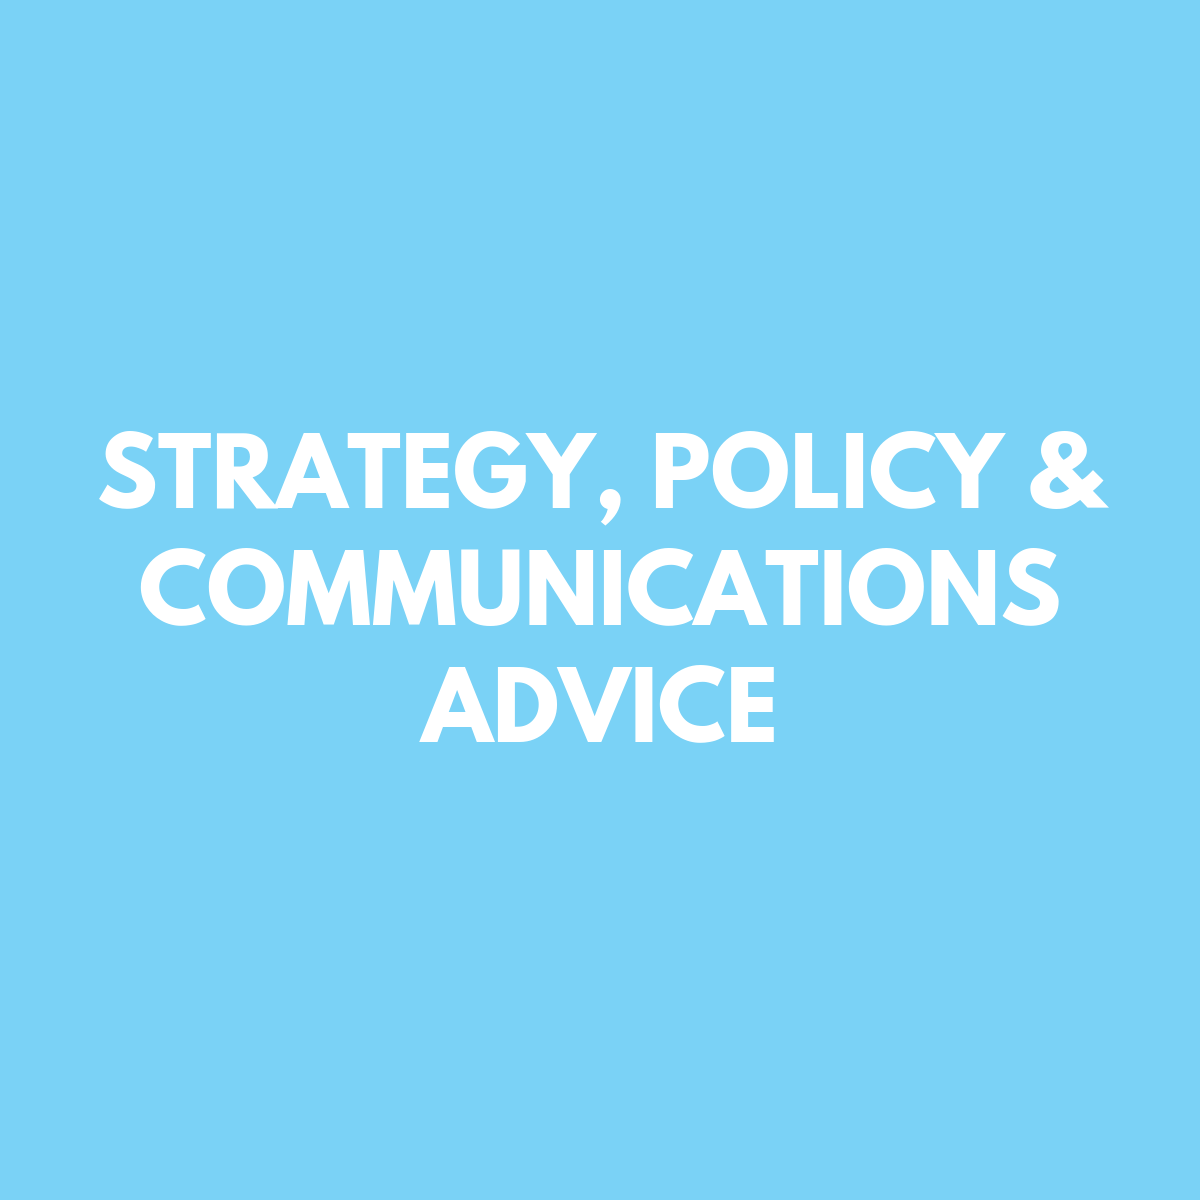 Strategy, Policy & Communications Advice